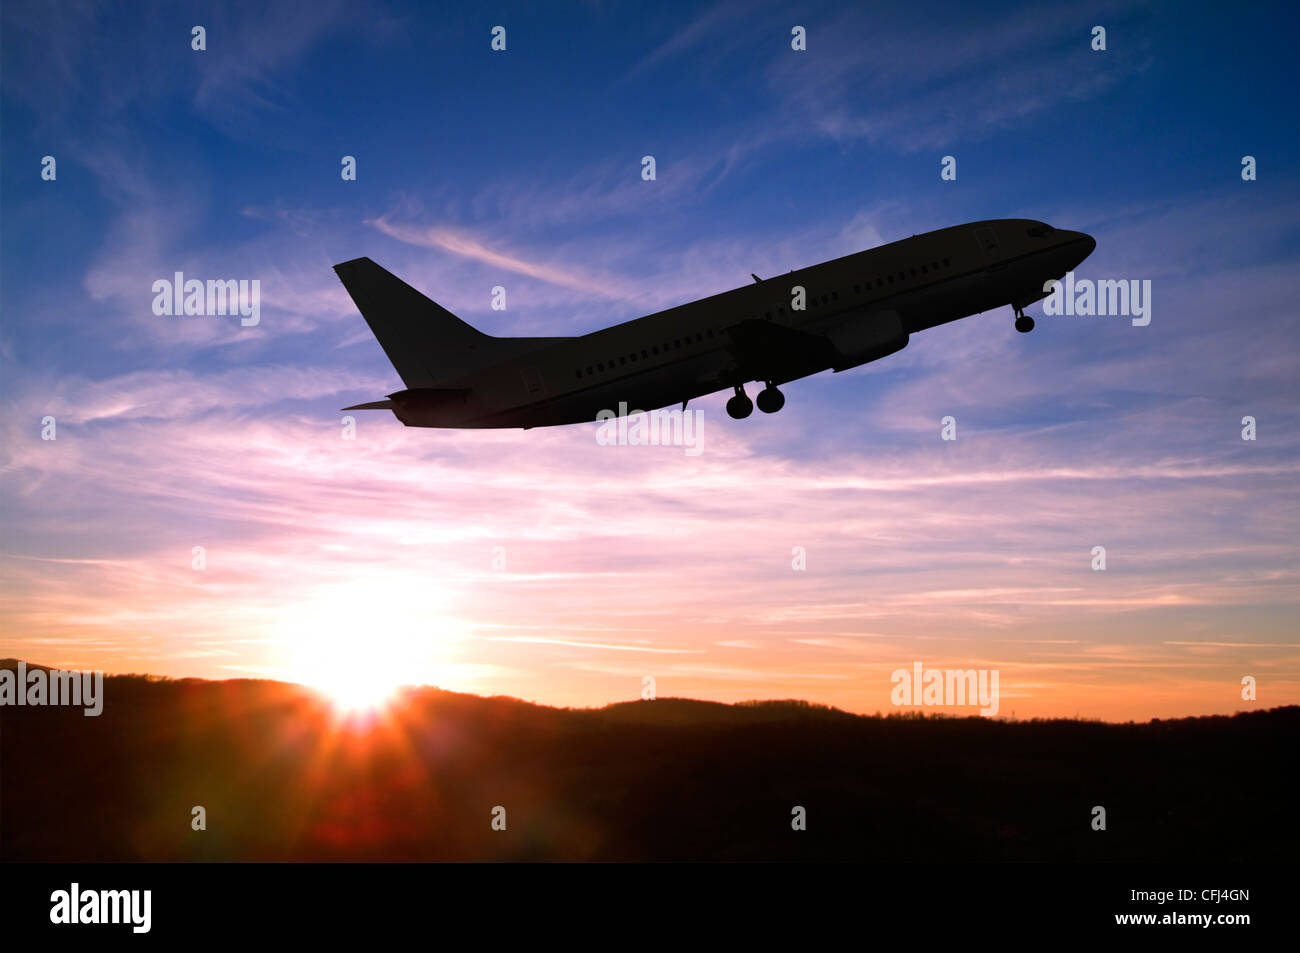 Airplane Taking Off into a Sunset. - Stock Image